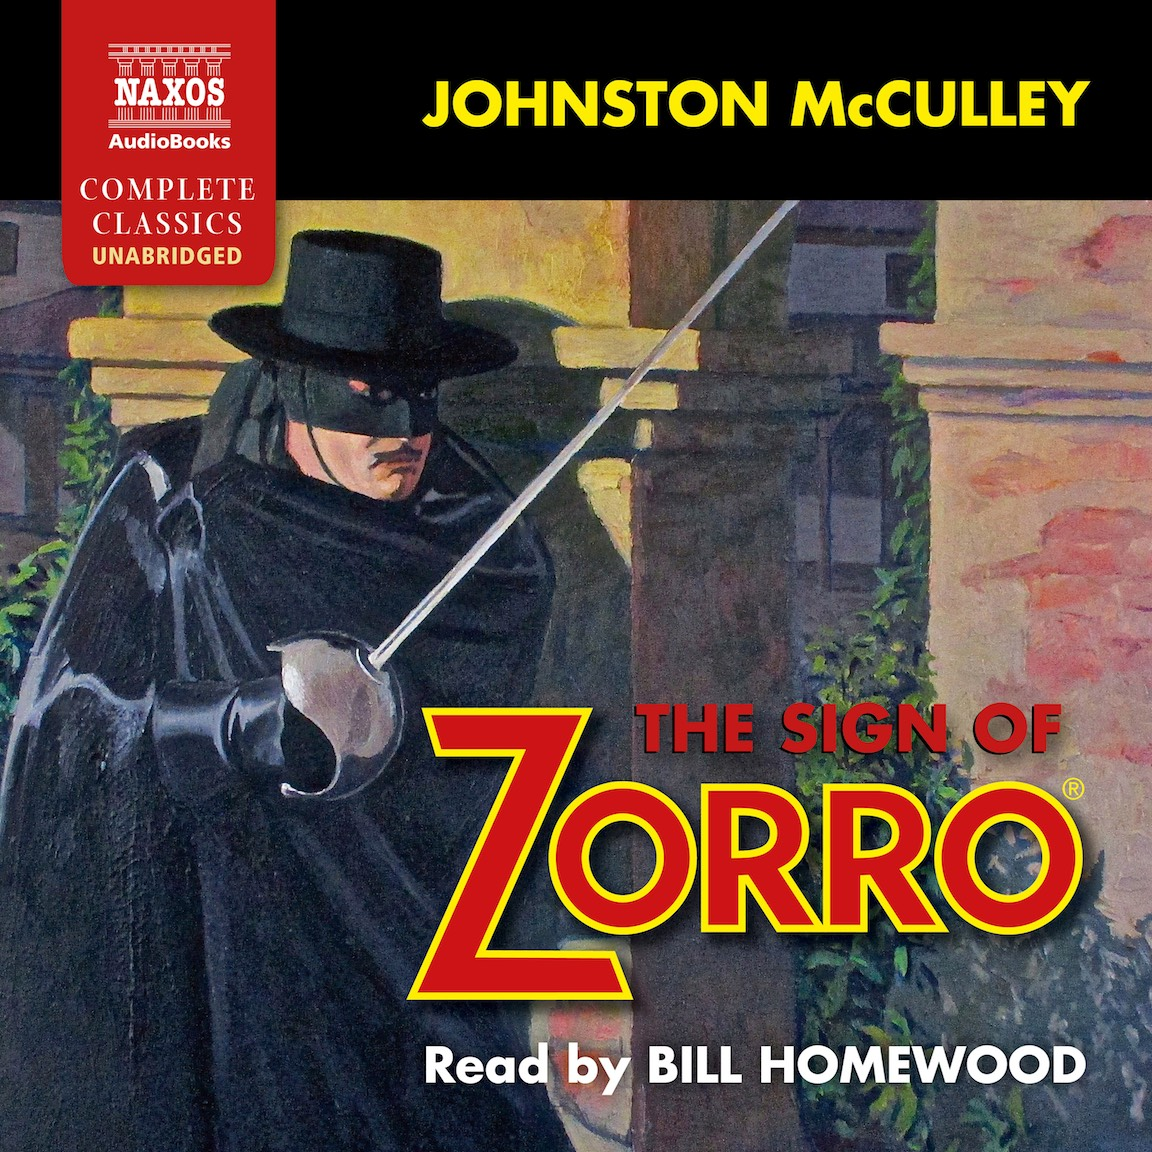 The Sign of Zorro (unabridged)